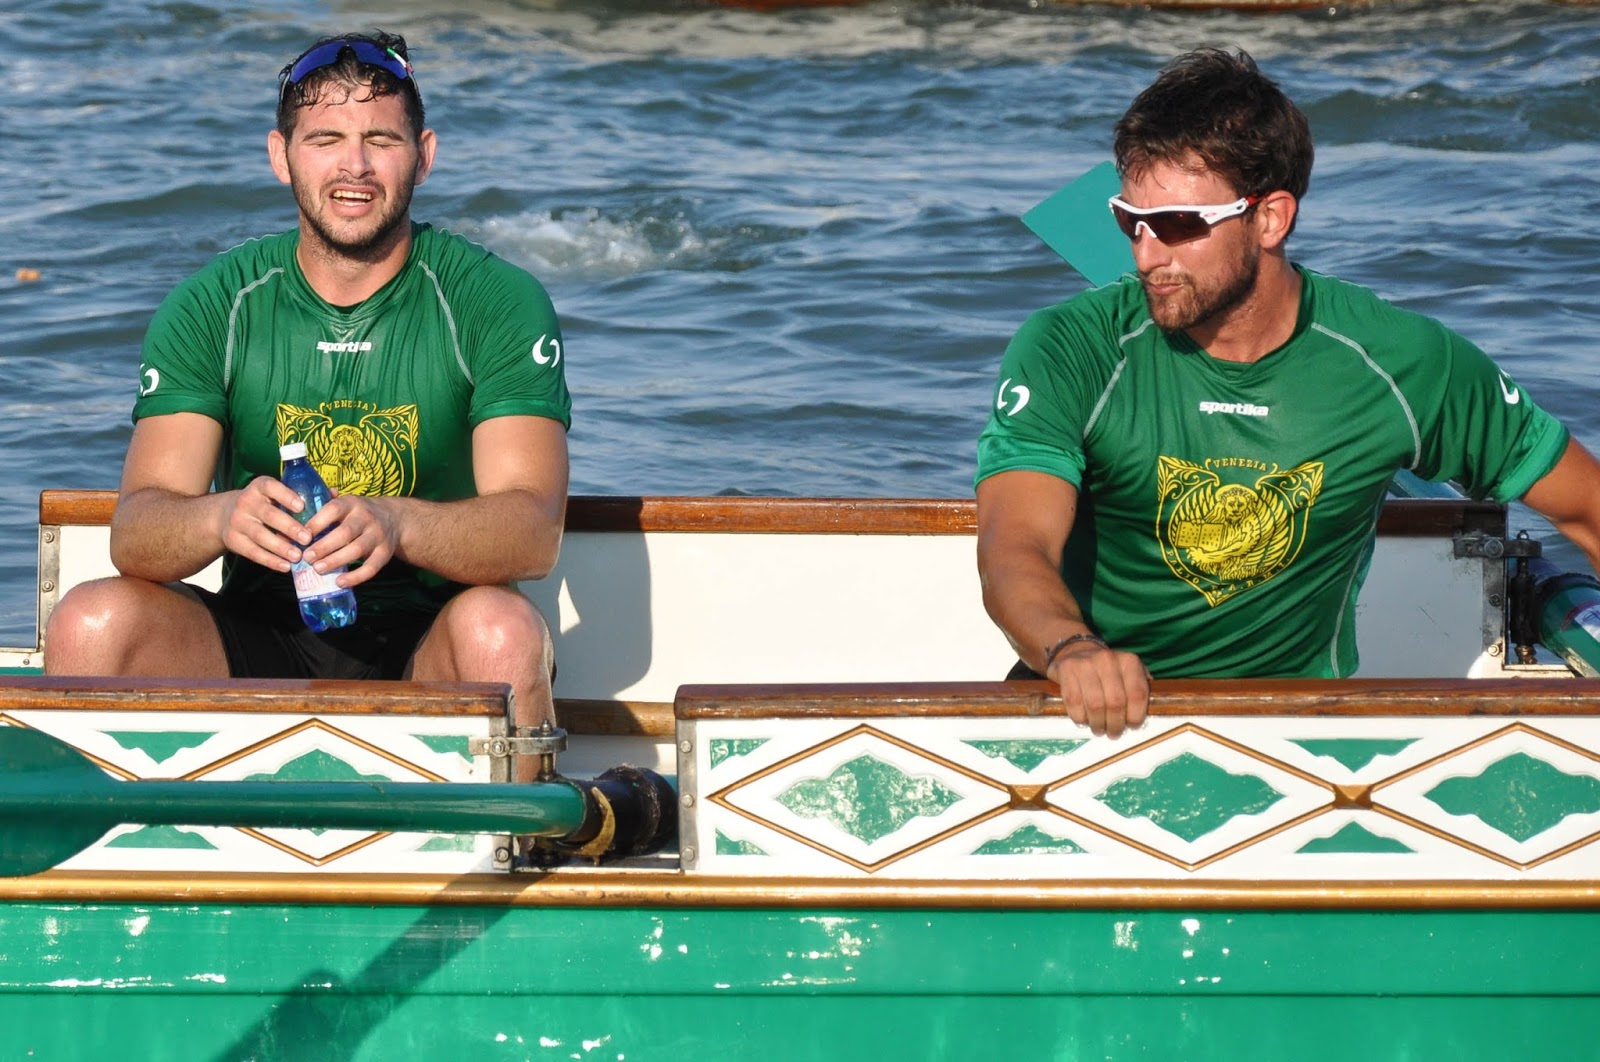 A close-up of the winning team, Regatta of the Ancient Maritime Republics, Venice, Italy